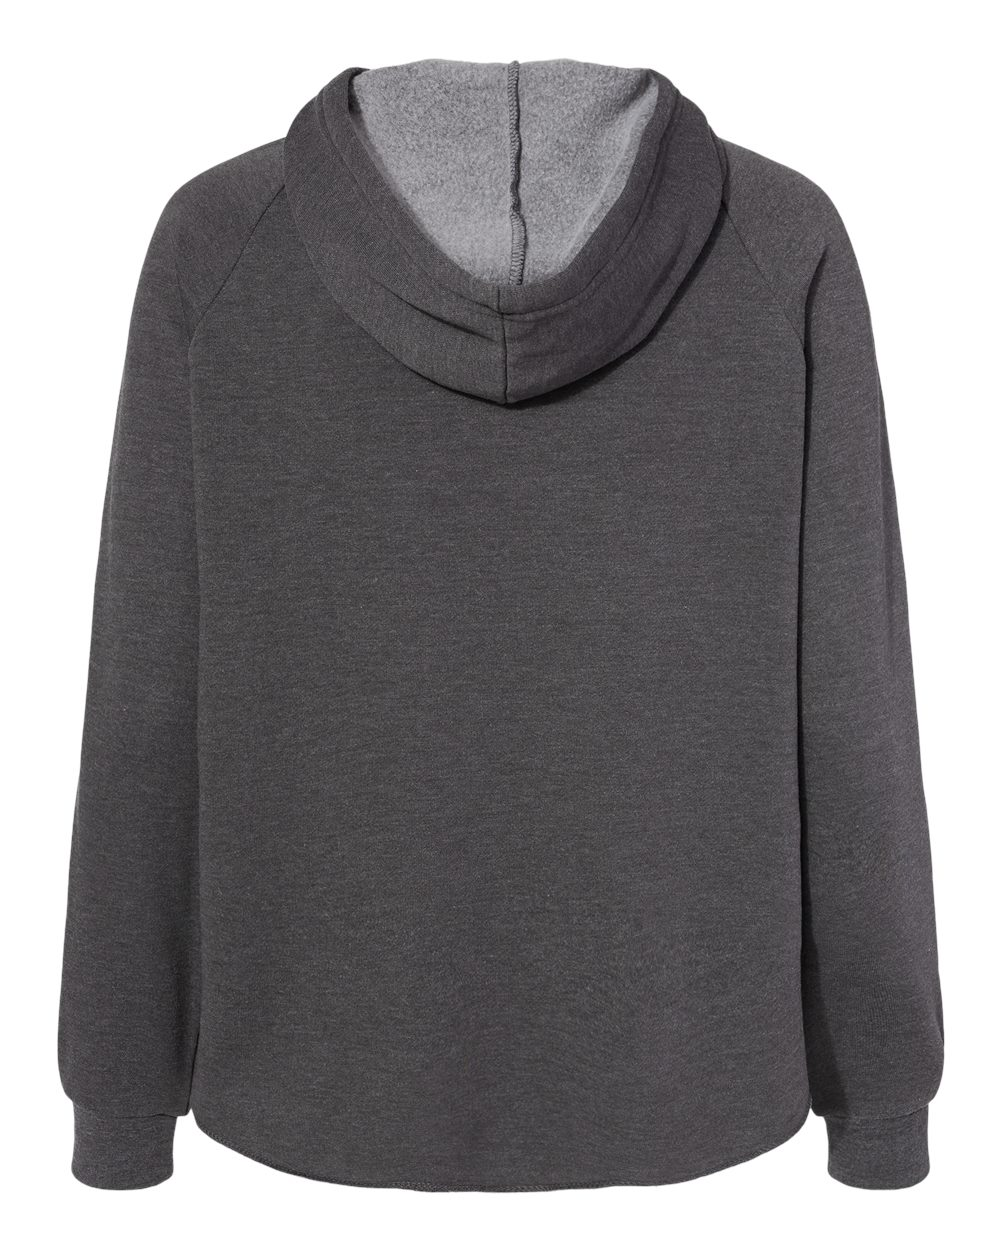 Independent-Trading-Co-Women-039-s-Wave-Wash-Full-Zip-Hooded-Sweatshirt-PRM2500Z thumbnail 18